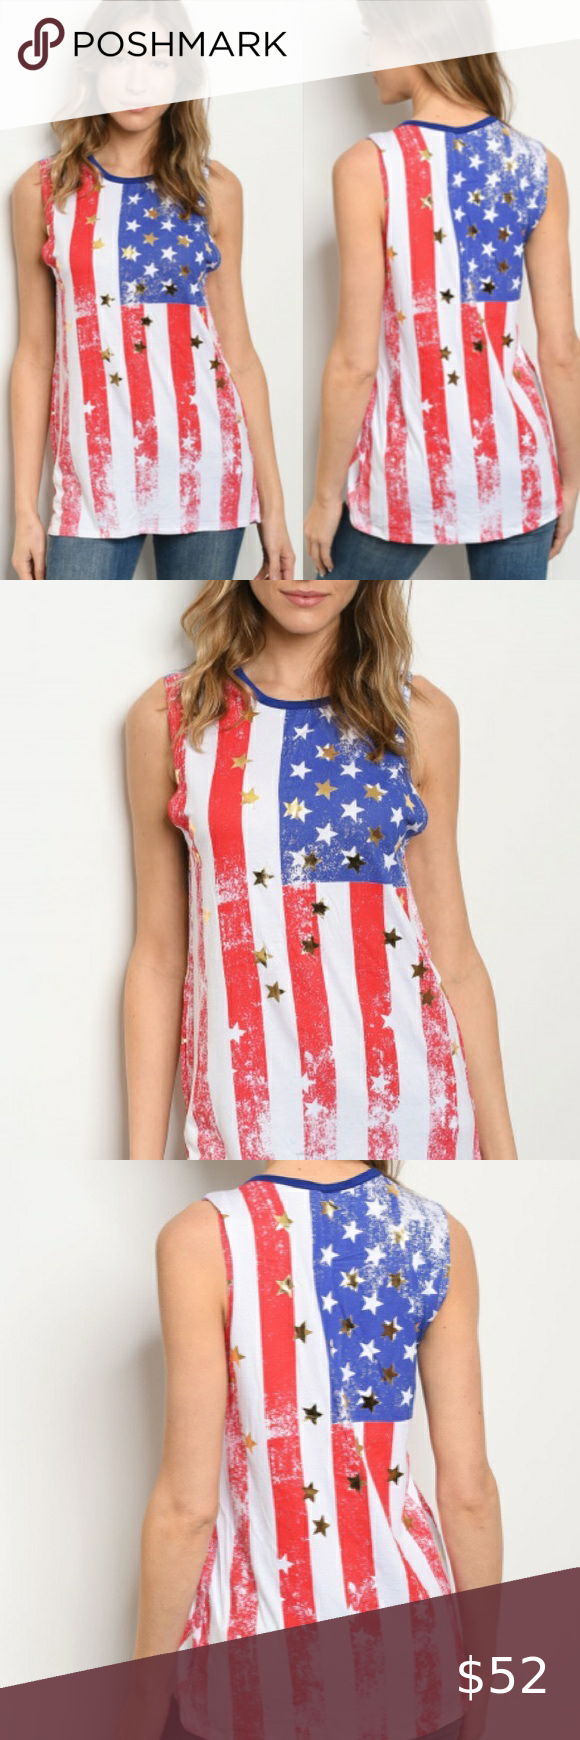 Gold Stars New American Flag Tank Top American Flag Gold Stars Tank Top Ladies Womens Wear True To Size In 2020 Top Fabric American Flag Tank Top Tank Tops Women